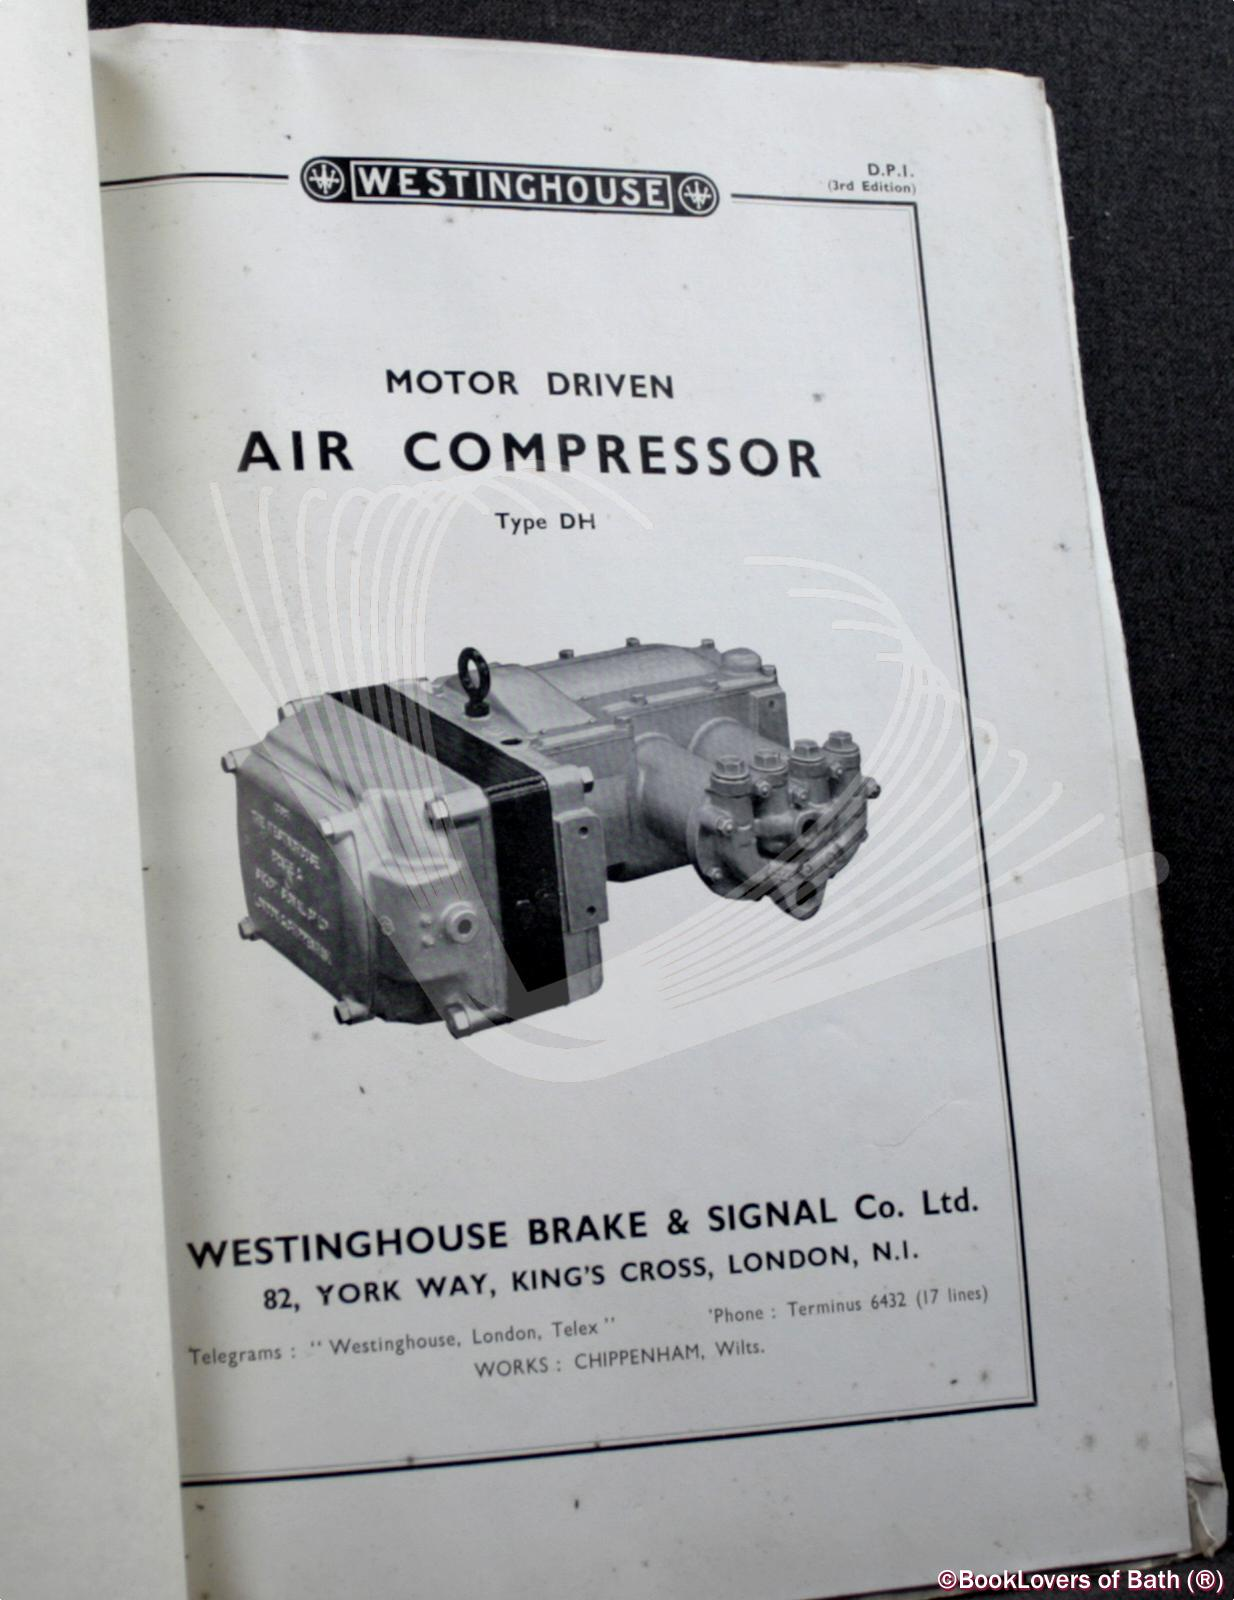 Westinghouse Catalogue No. Z. 1027 - Anon.